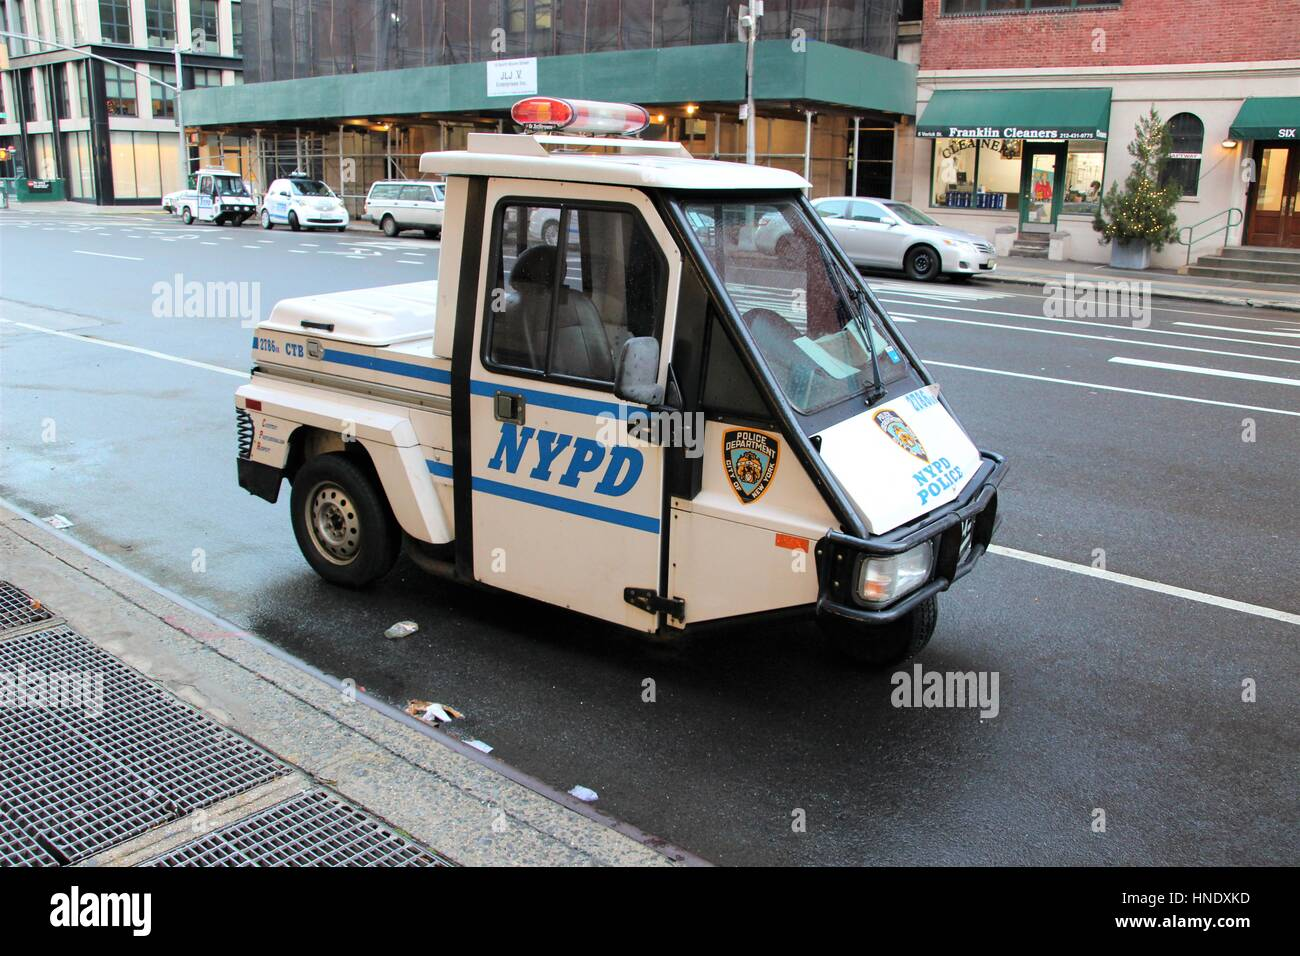 New York Police Department Nypd Meter Maid Vehicle Parking Enforcement On The Street In New York City United States Of America Stock Photo Alamy